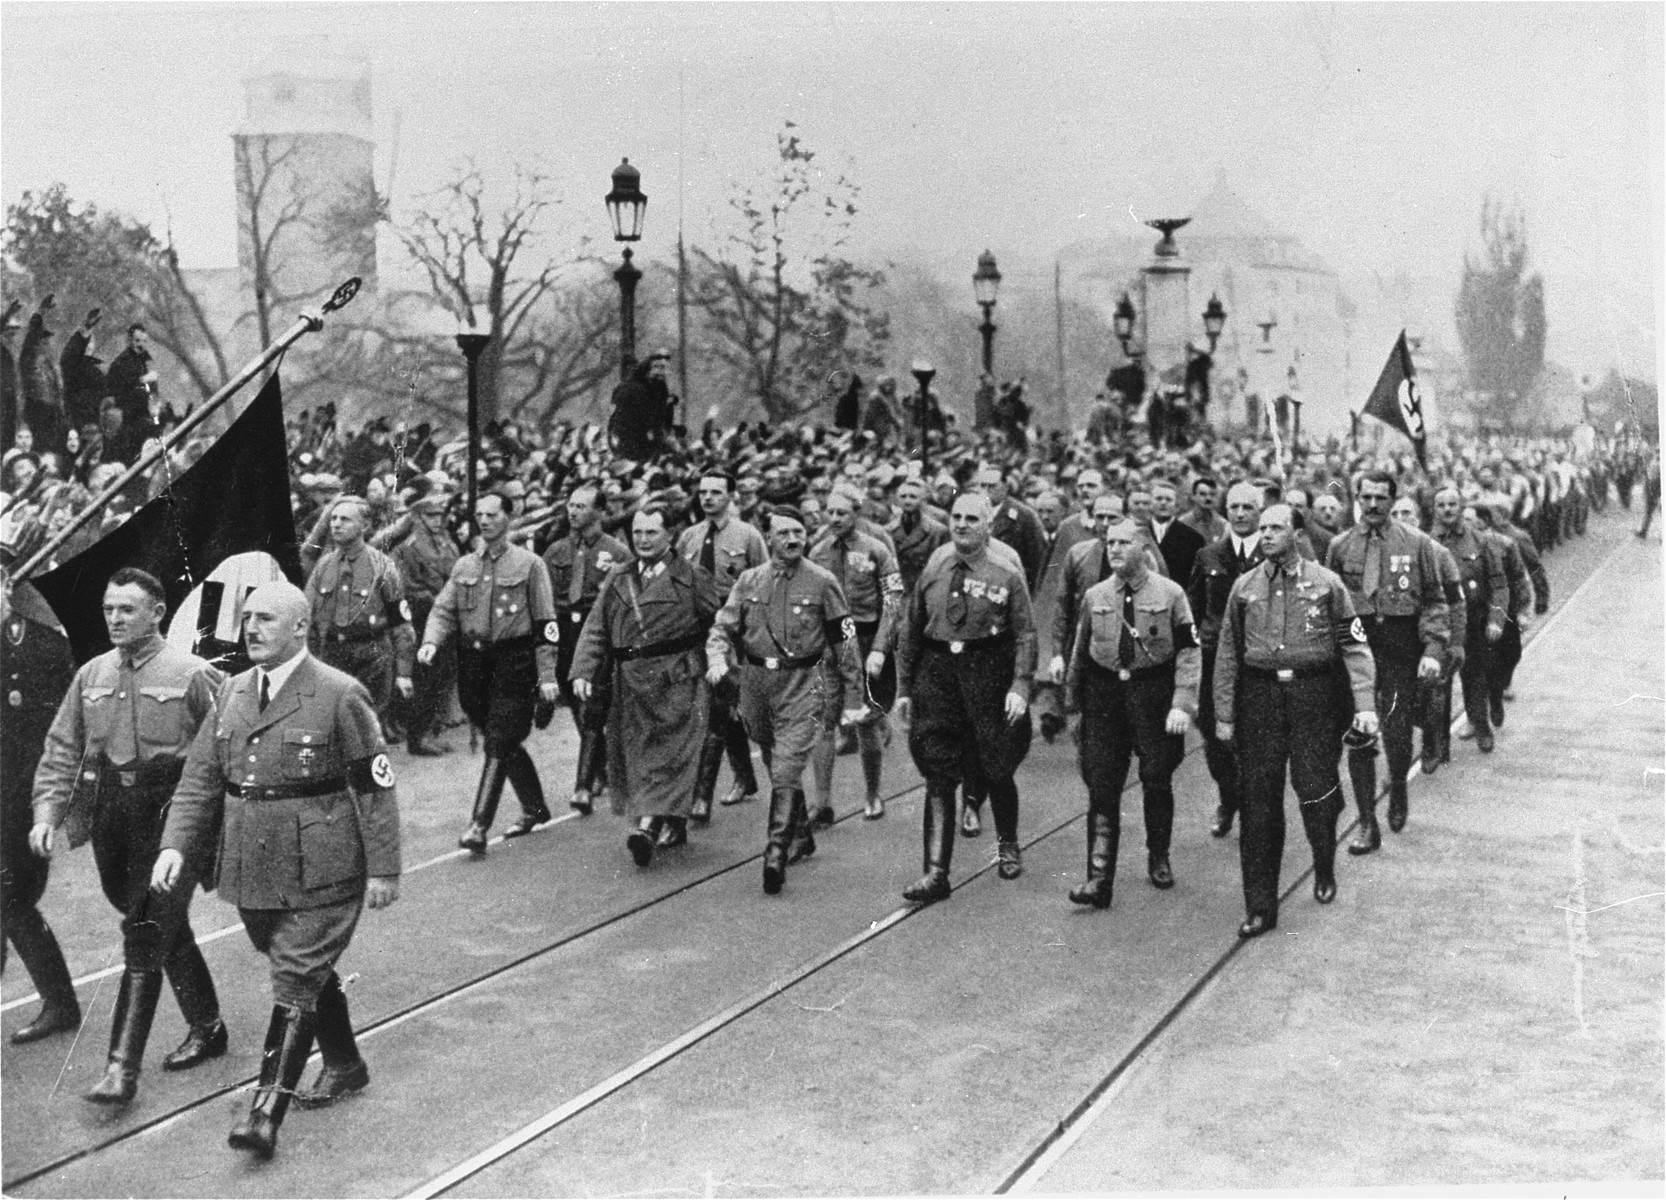 """Adolf Hitler, Hermann Goering, Julius Streicher, and other """"old fighters,"""" retrace the route of the march in 1923 during ceremonies commemorating the eleventh anniversary of the """"beer hall putsch."""""""